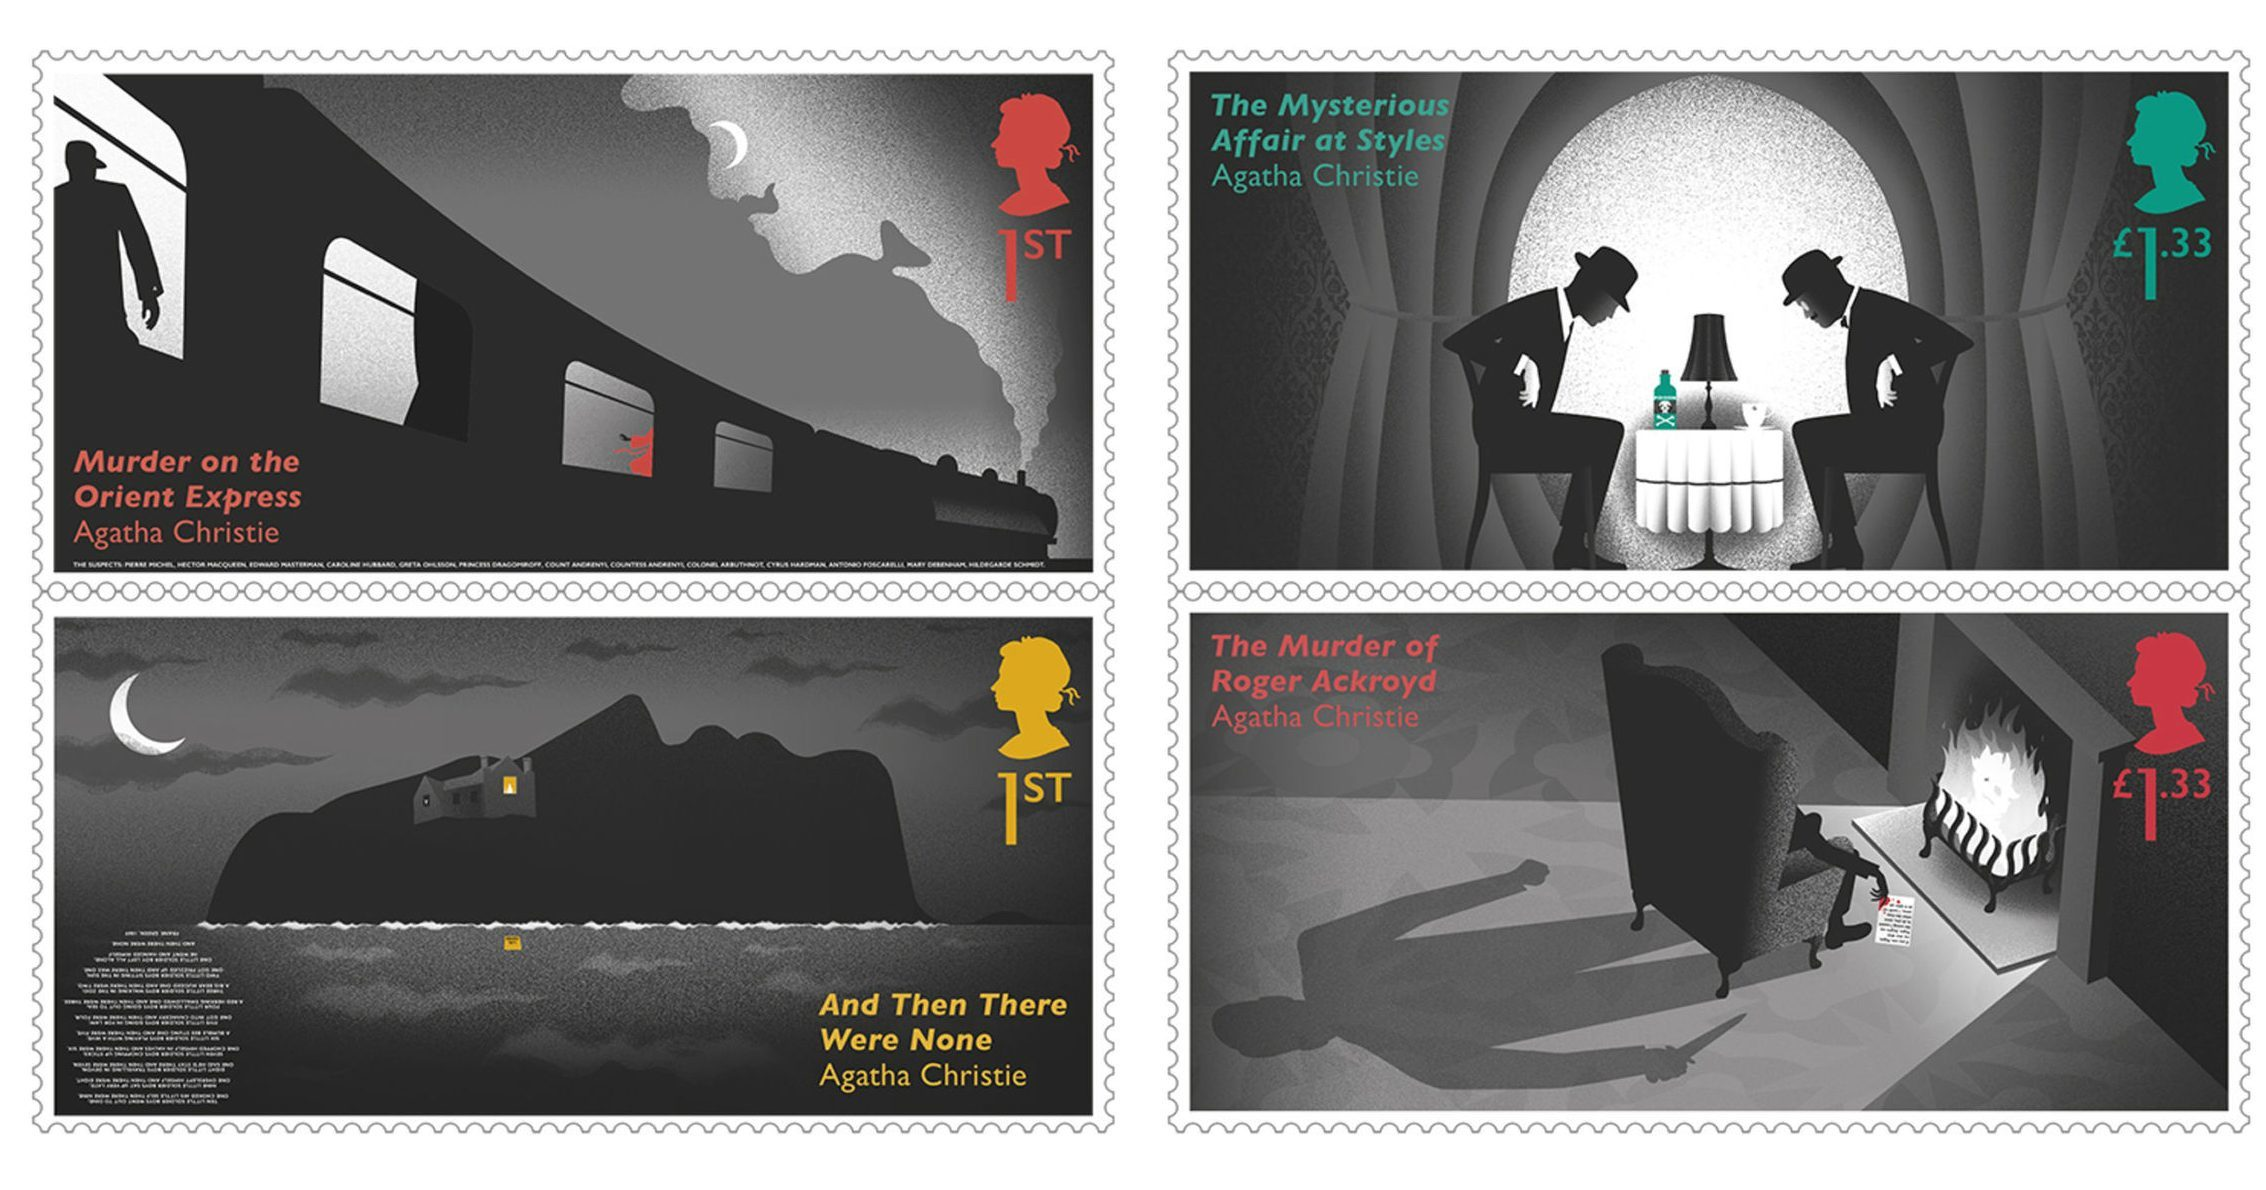 Agatha Christie stamps (Royal Mail/PA Wire)